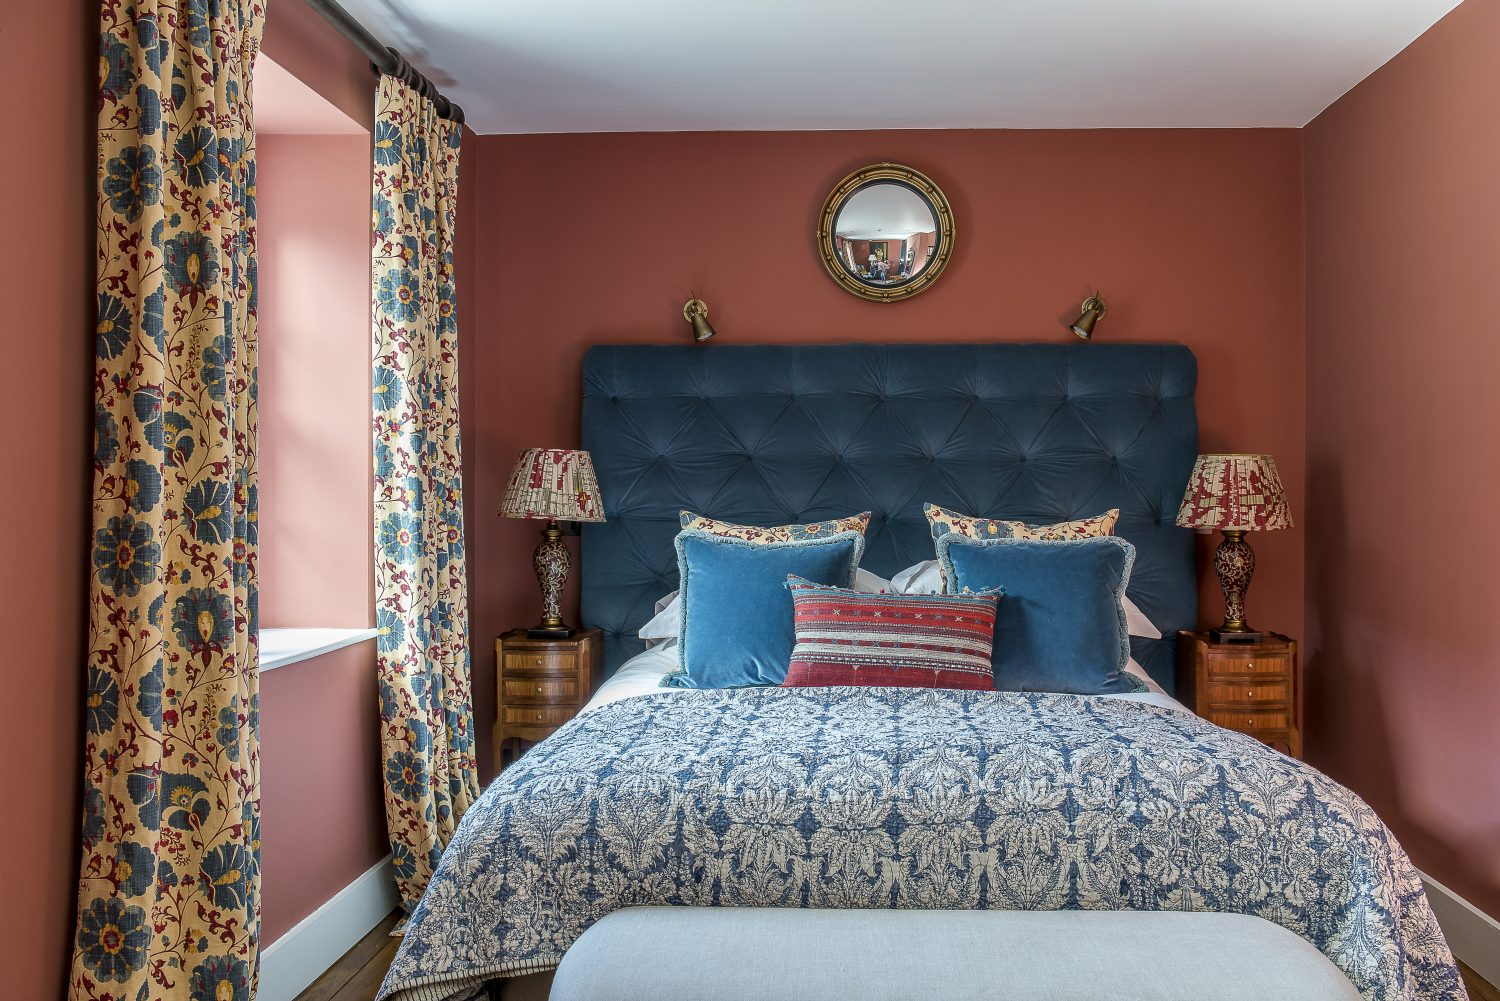 The curtains in the Myrtle bedroom are Zarafshan by Lewis & Wood